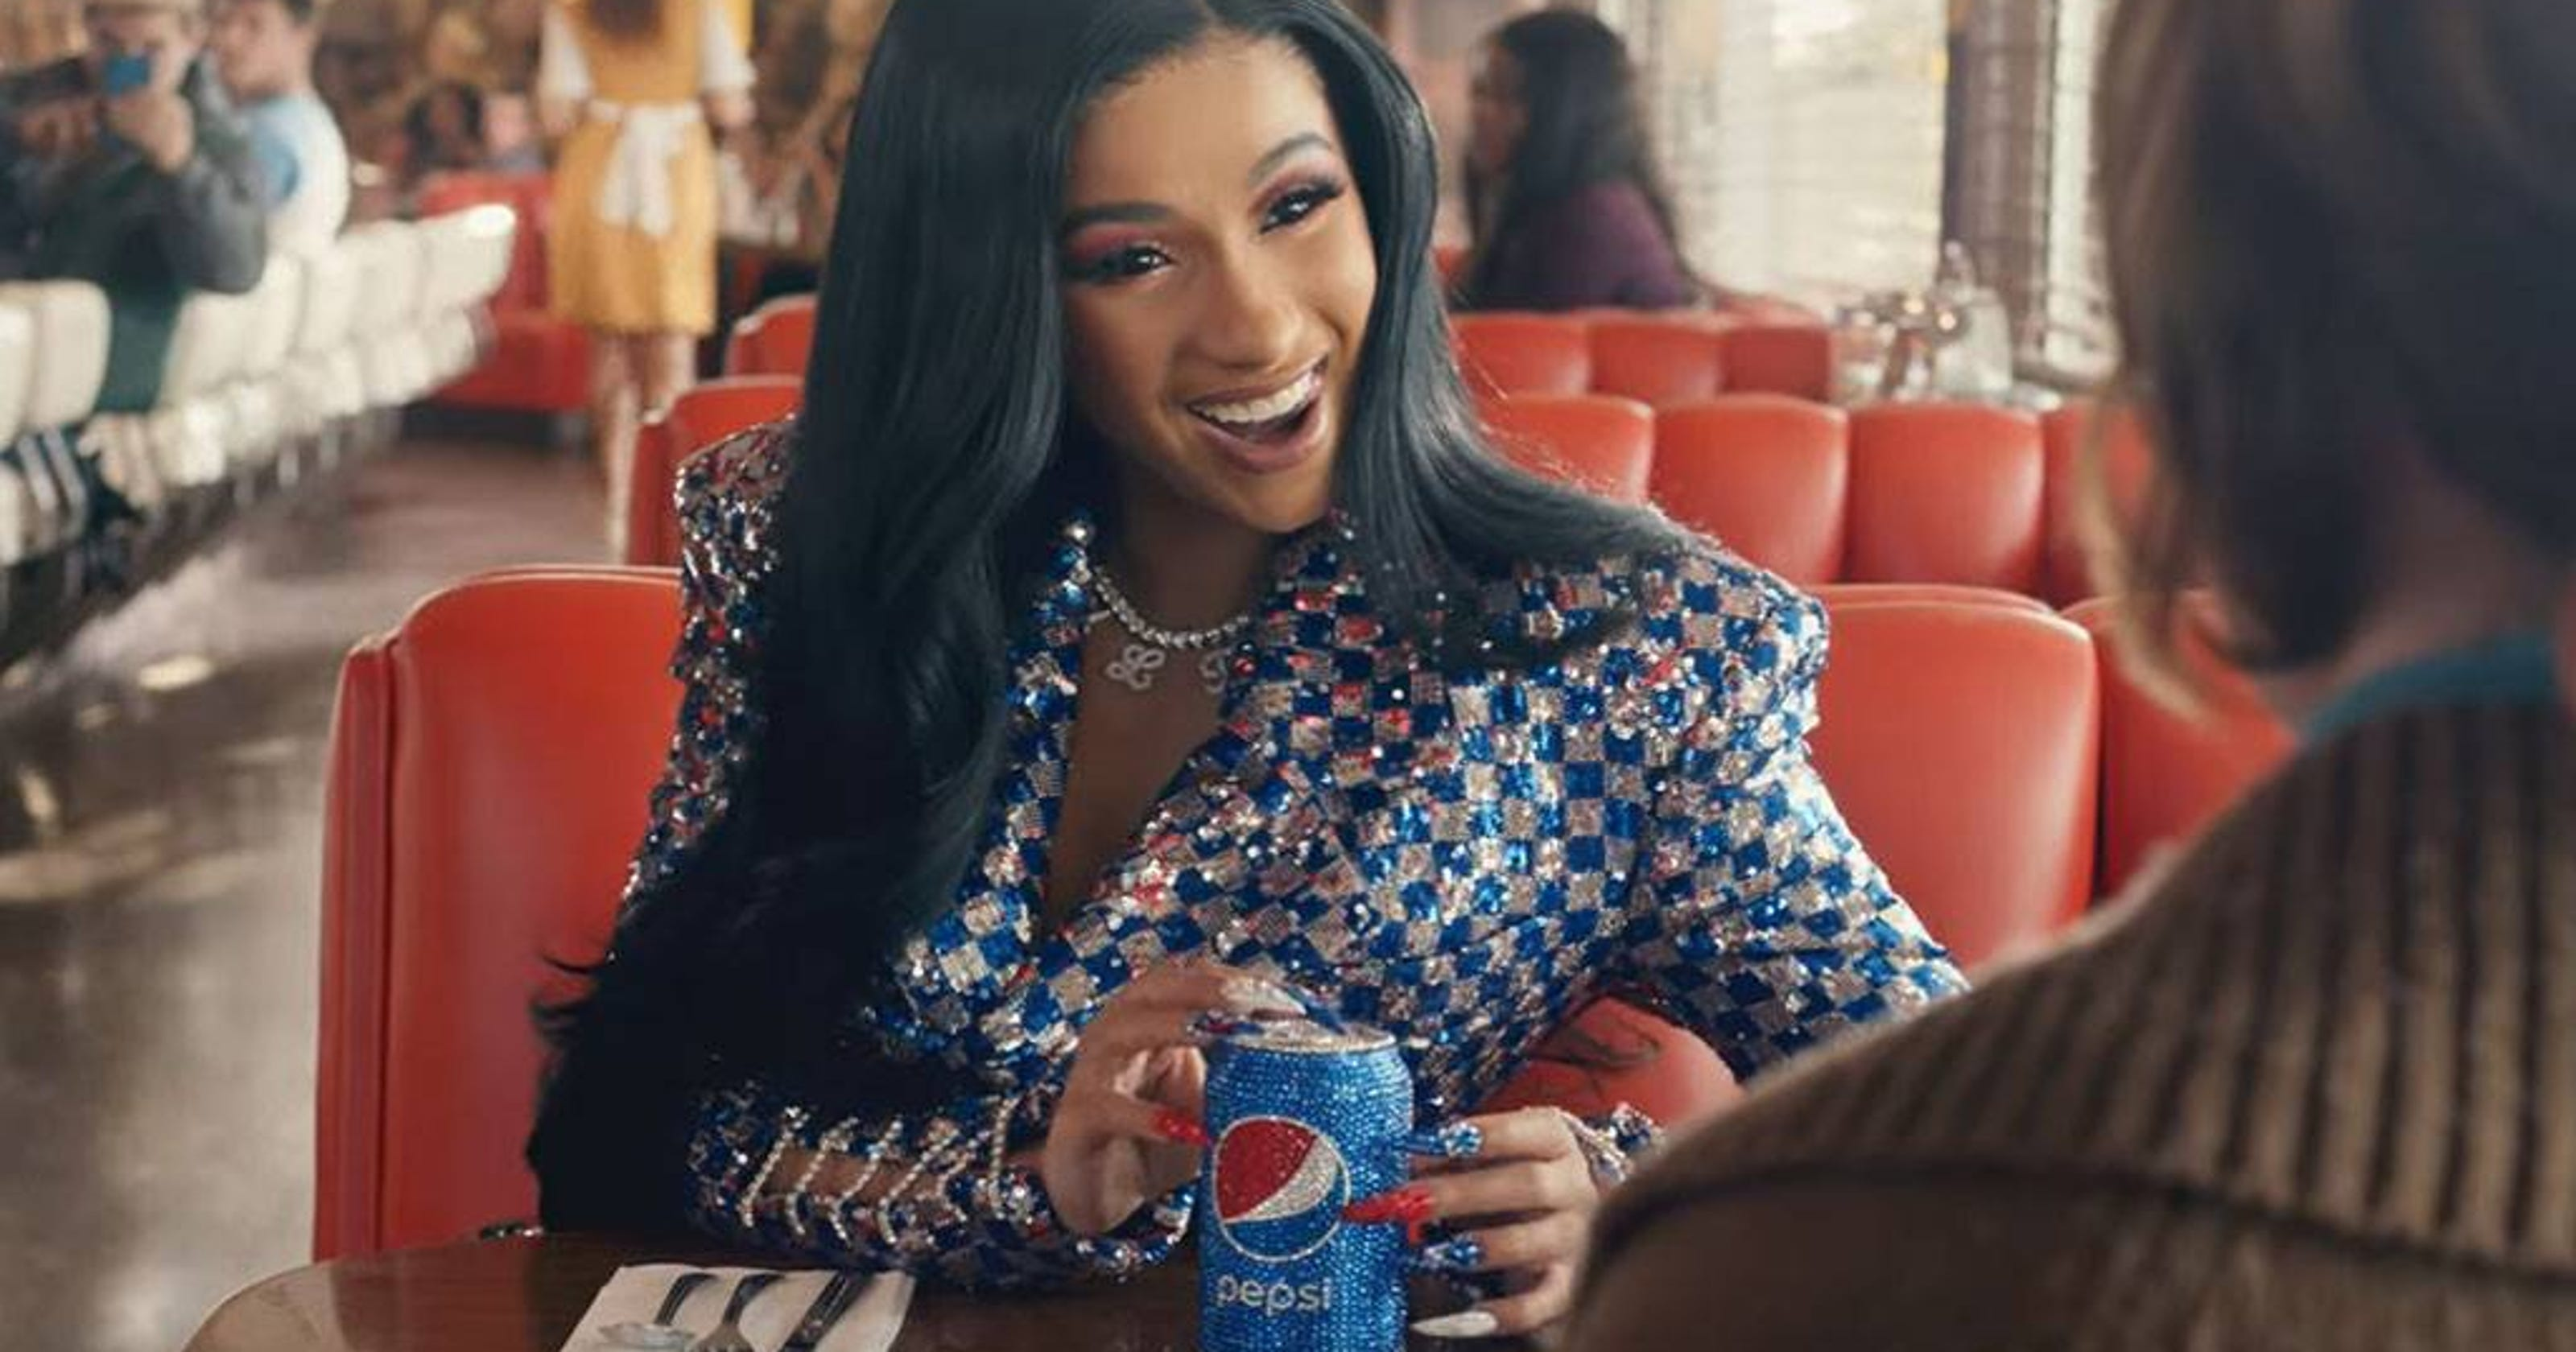 Patriots vs  Rams isn't the only Super Bowl contest  Pepsi